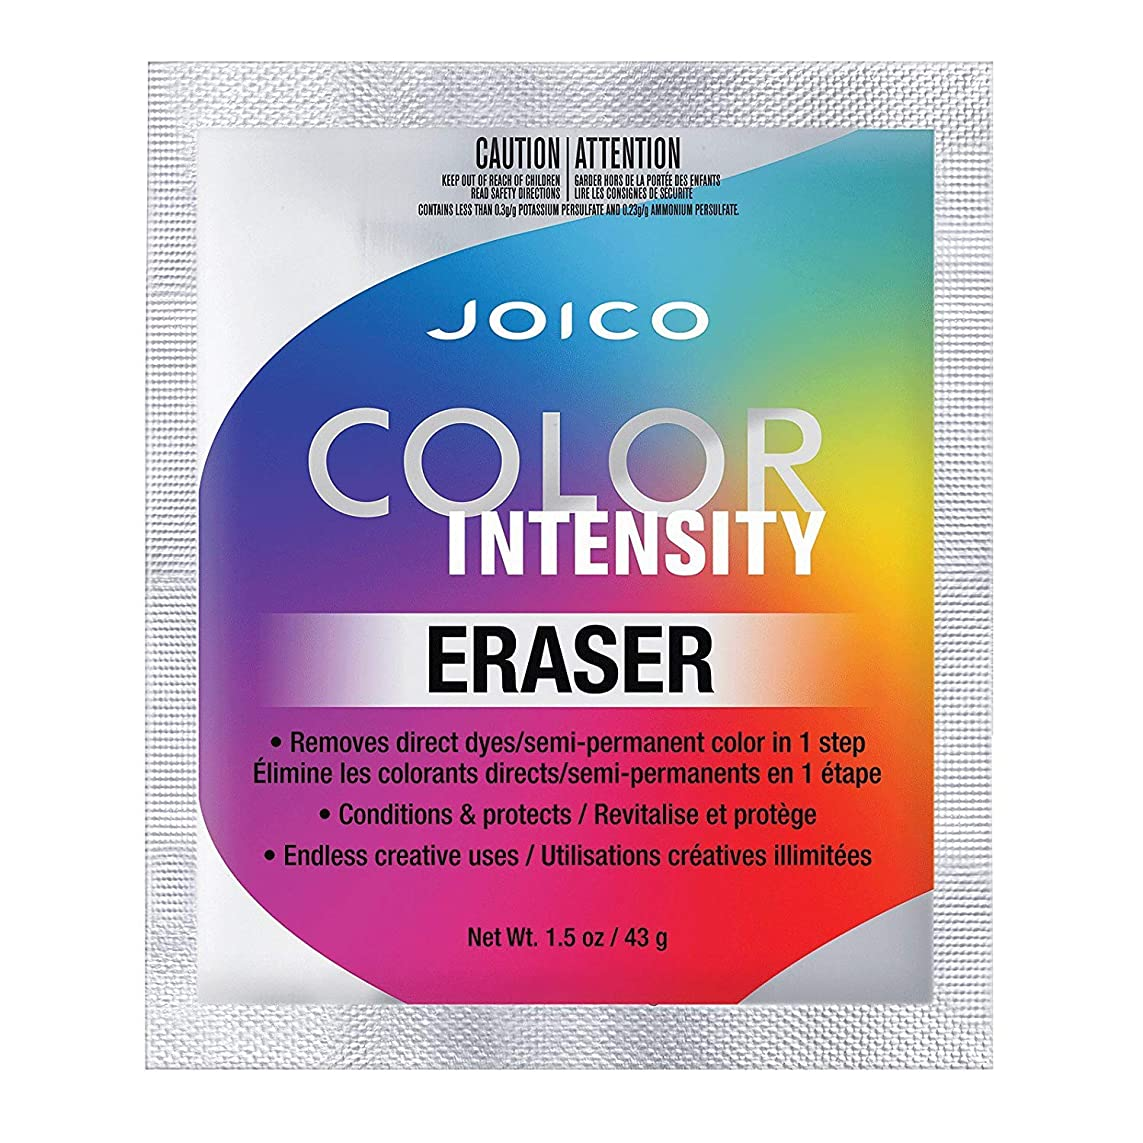 機会明るくする背骨Joico Colour Intensity Eraser 43g sachet